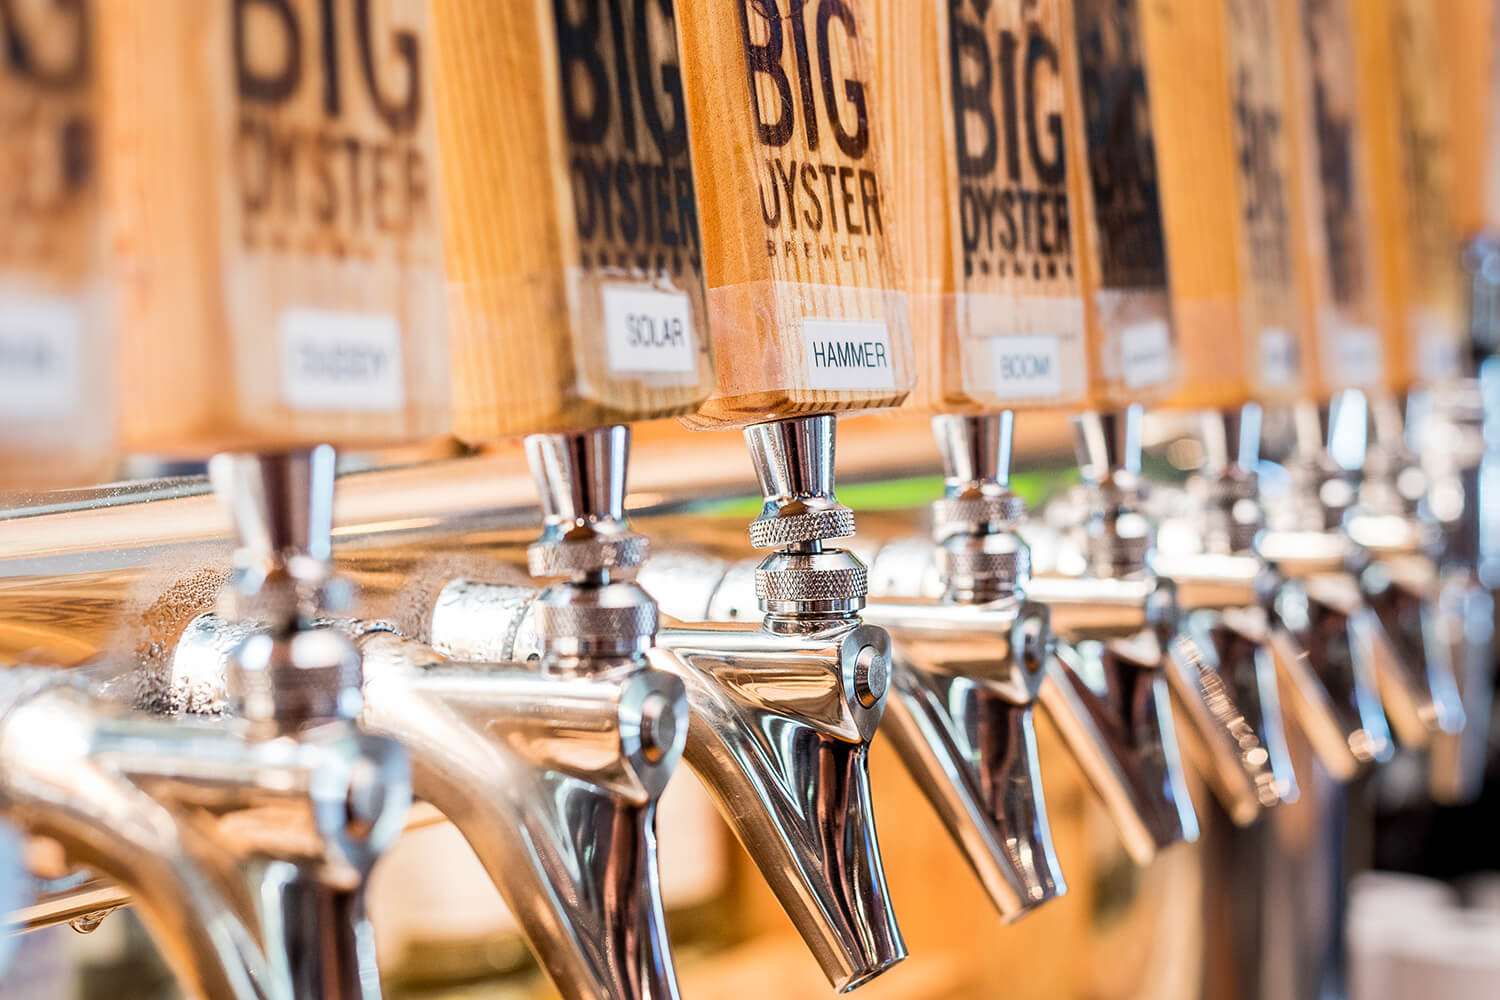 Big Oyster Brewery in Lewes, Delaware